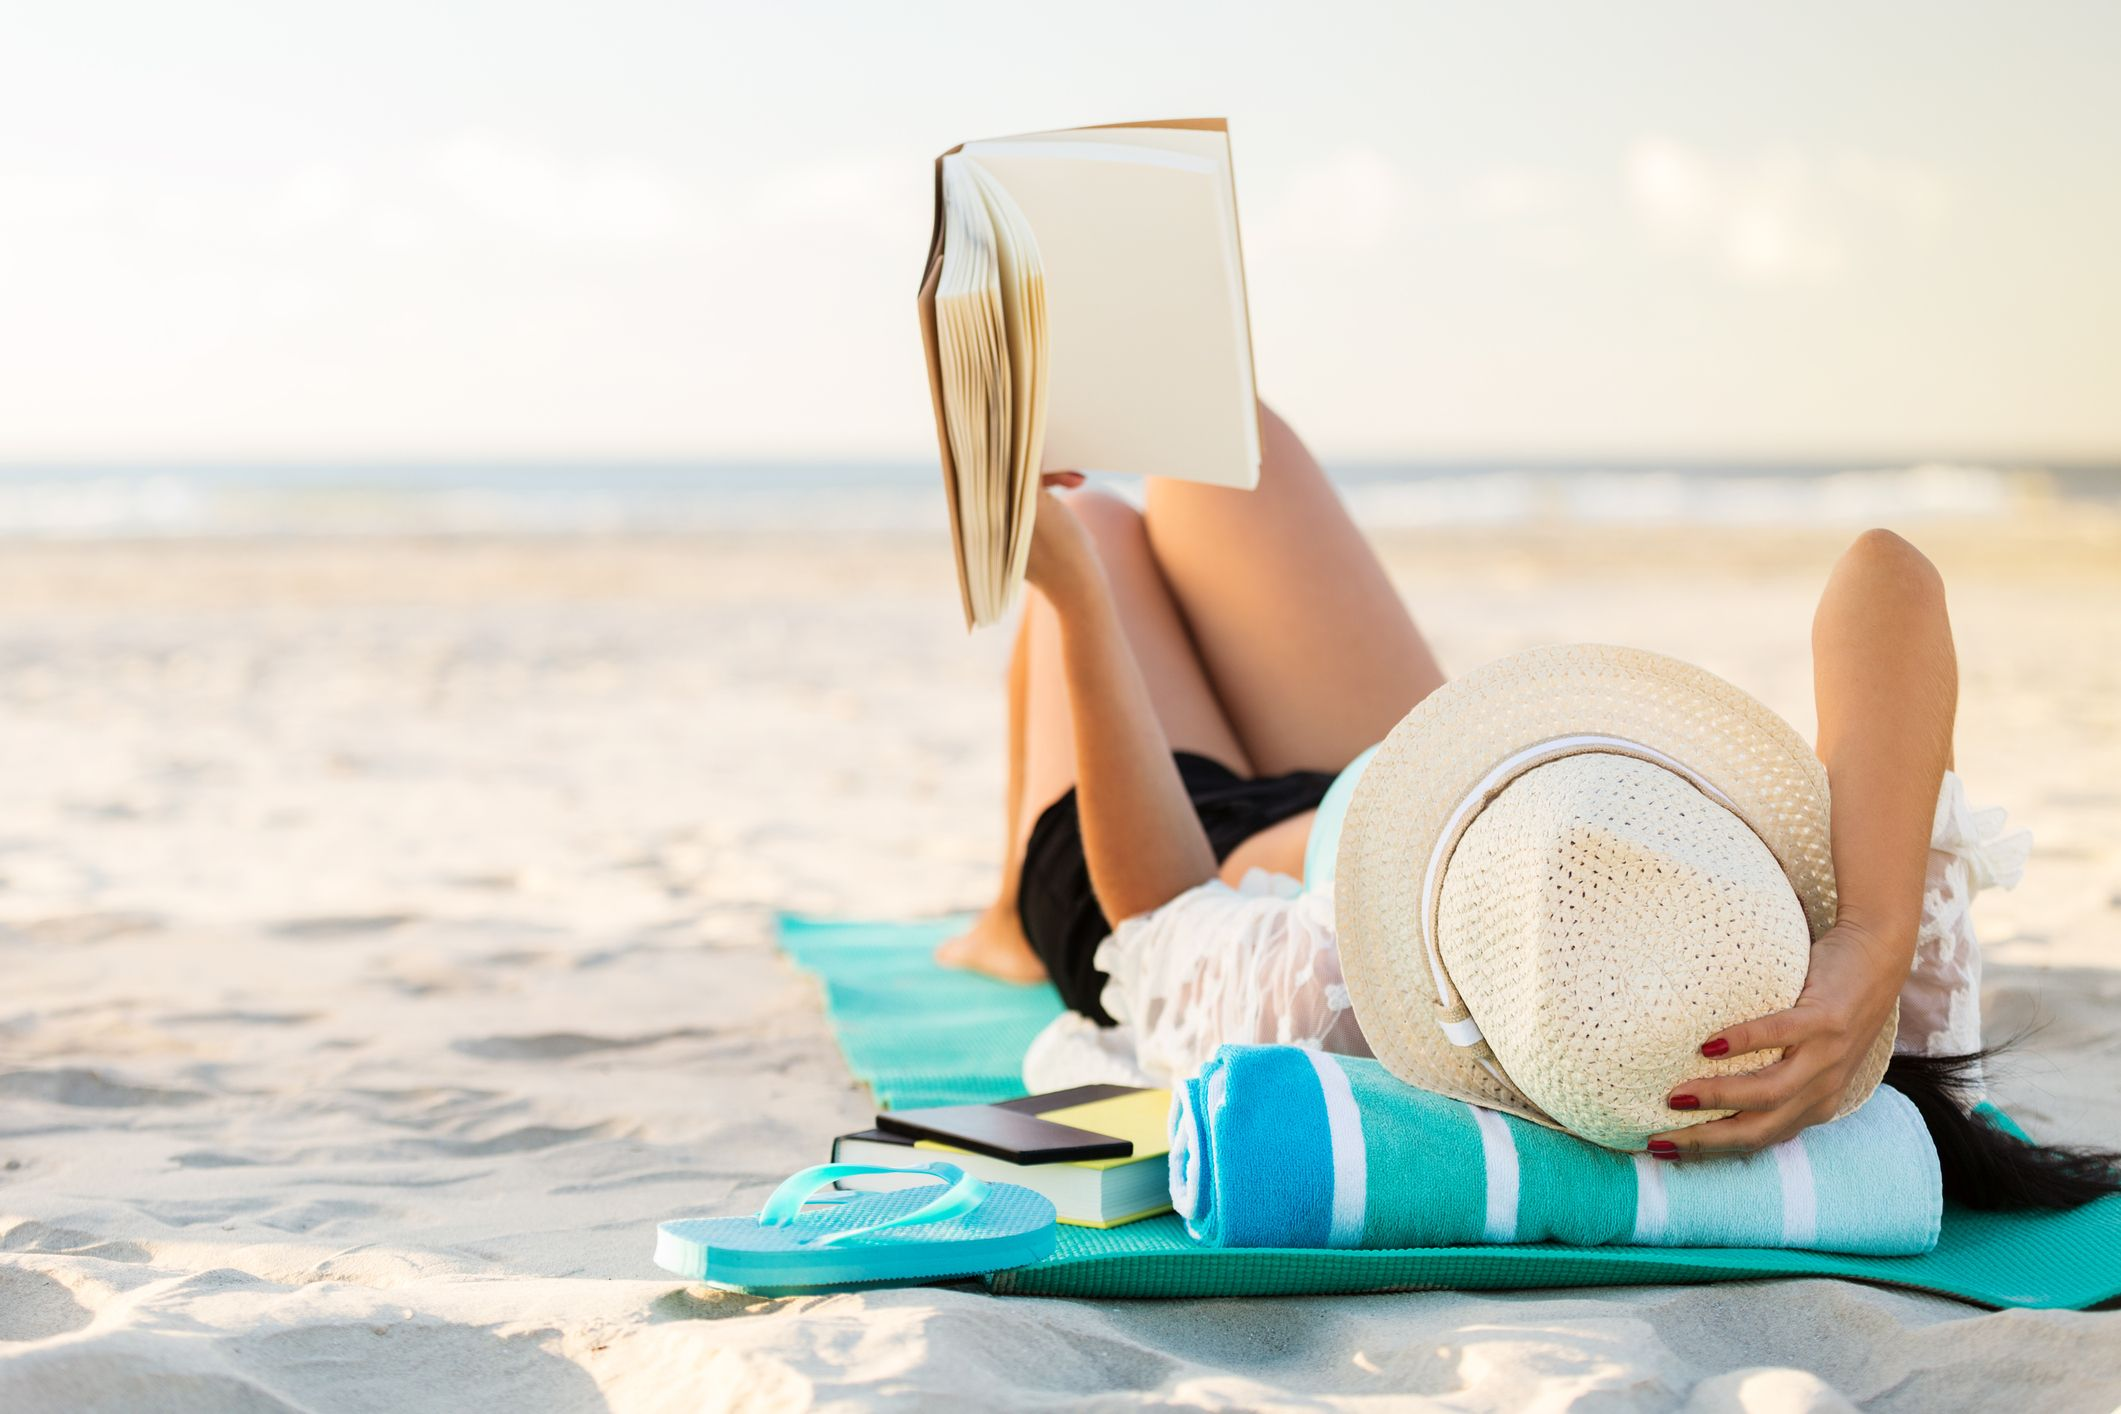 The 10 Best Beach Reads For Your Next Vacay